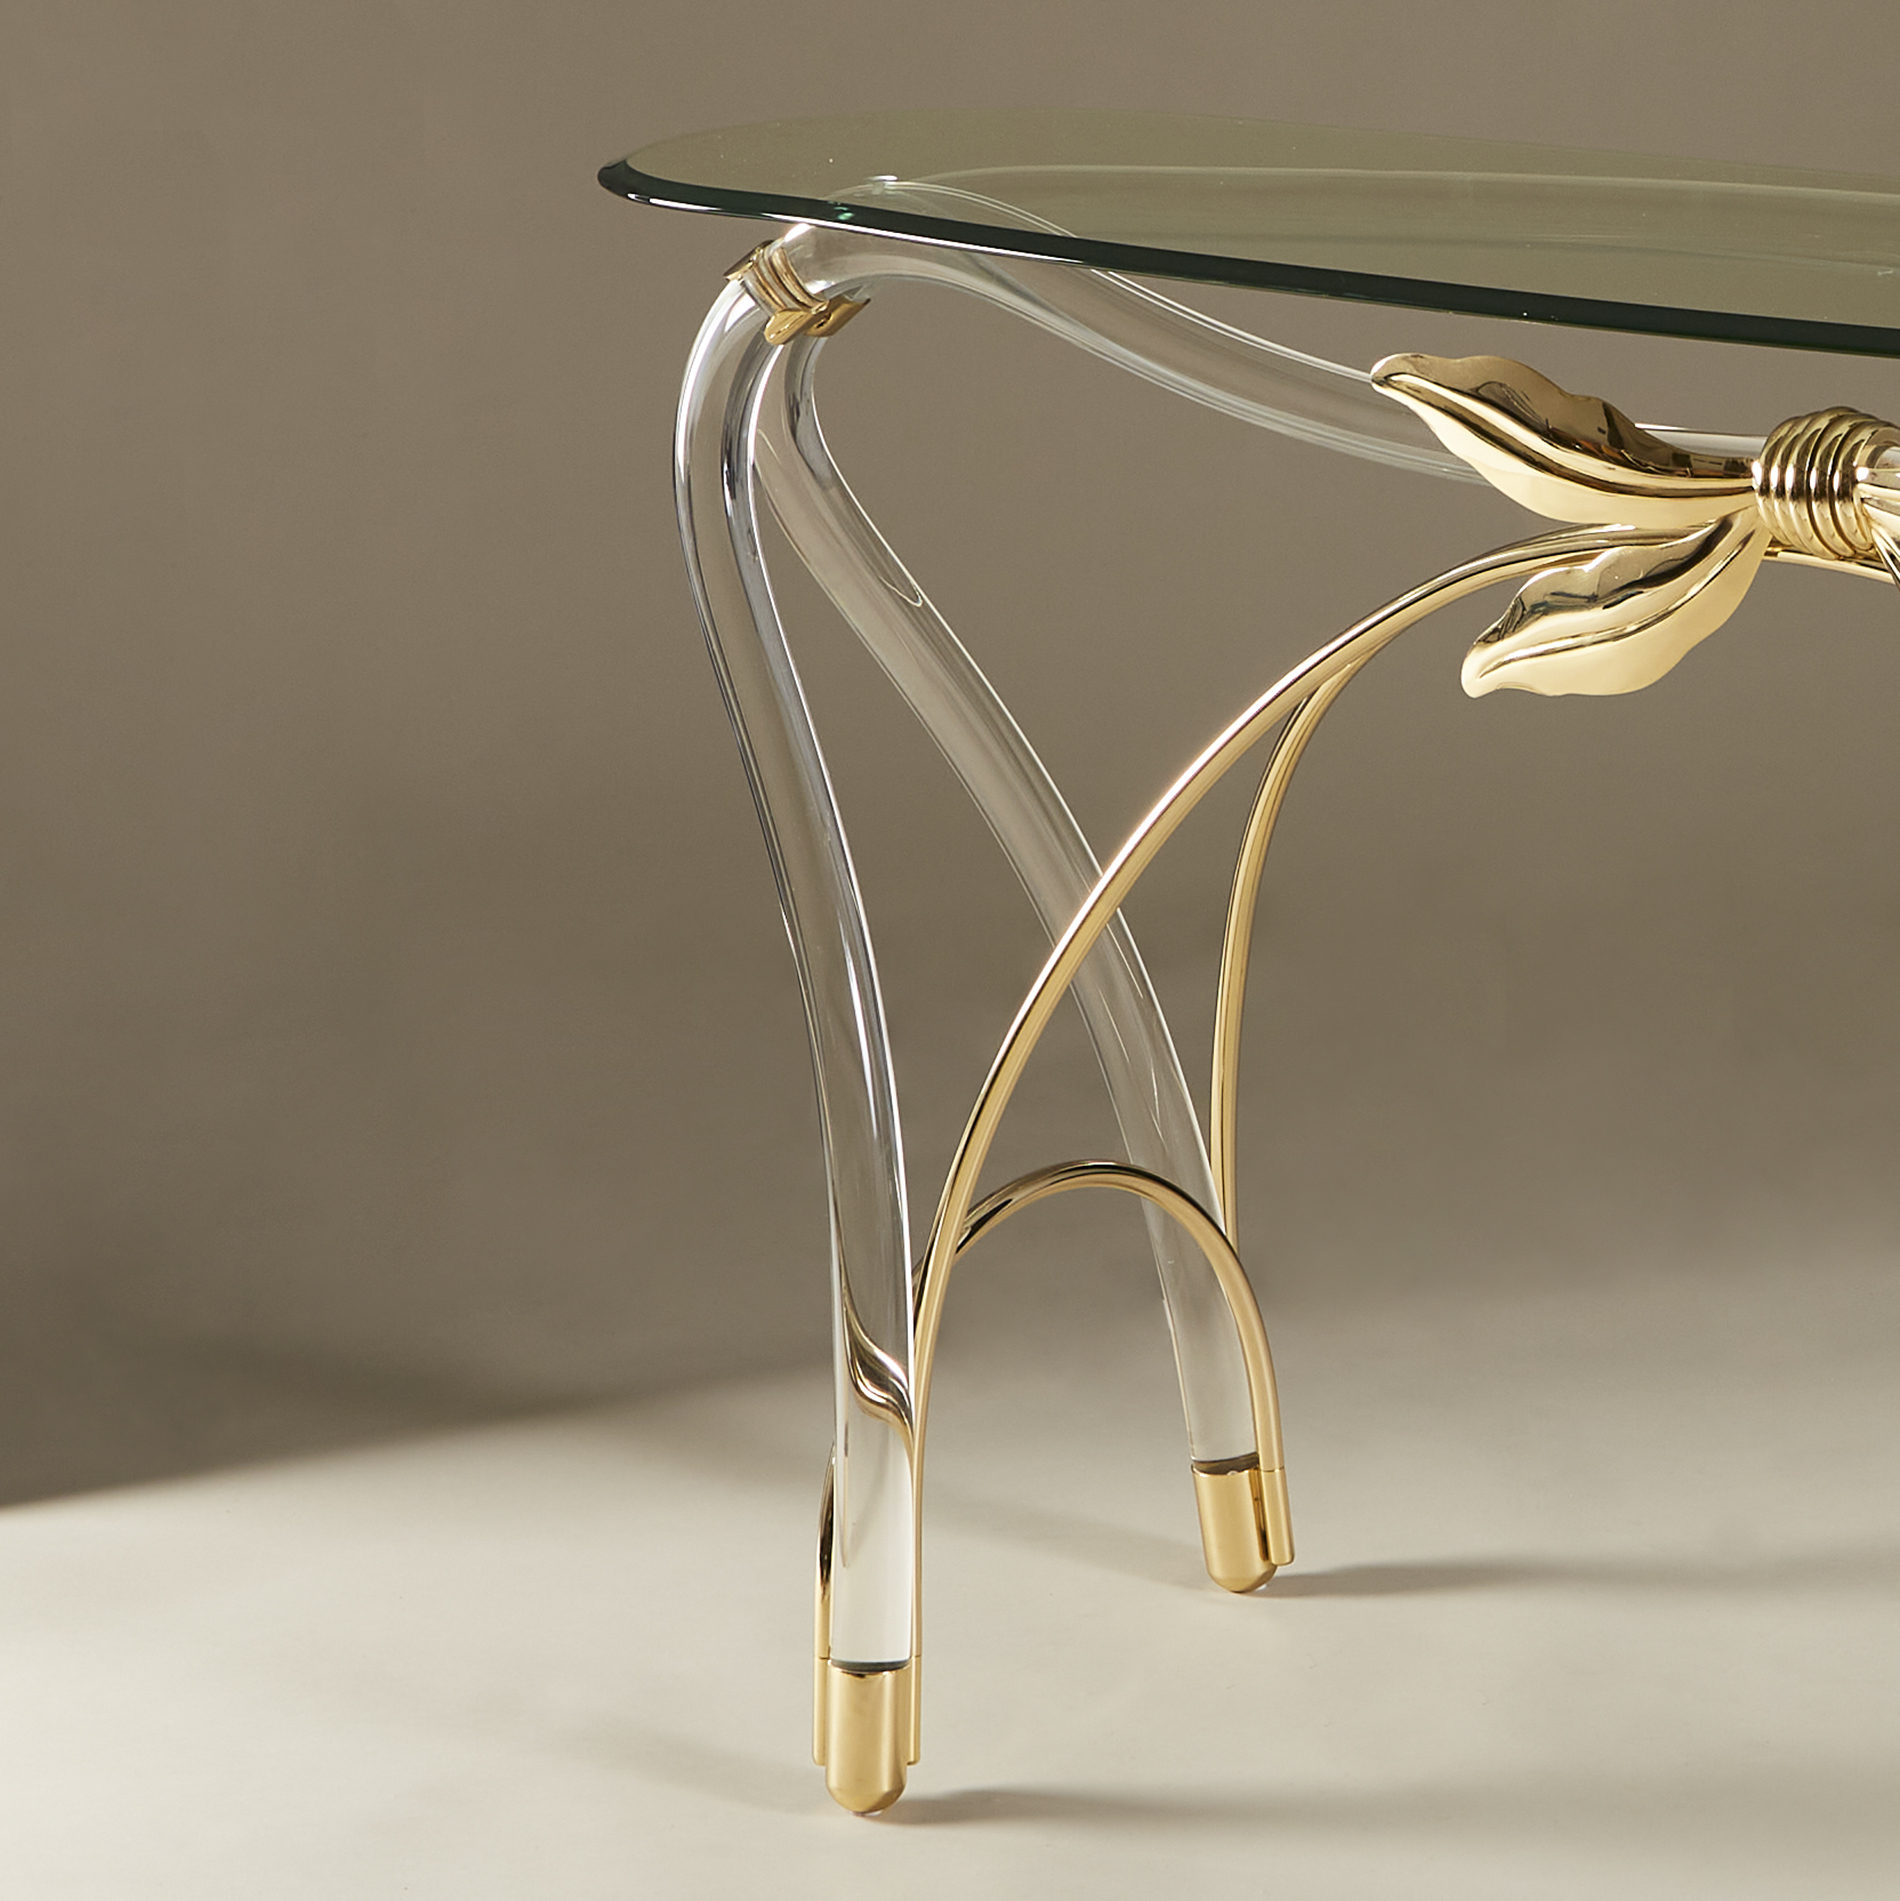 Bow Glass Console 20210126 Valerie Wade 0229 V1